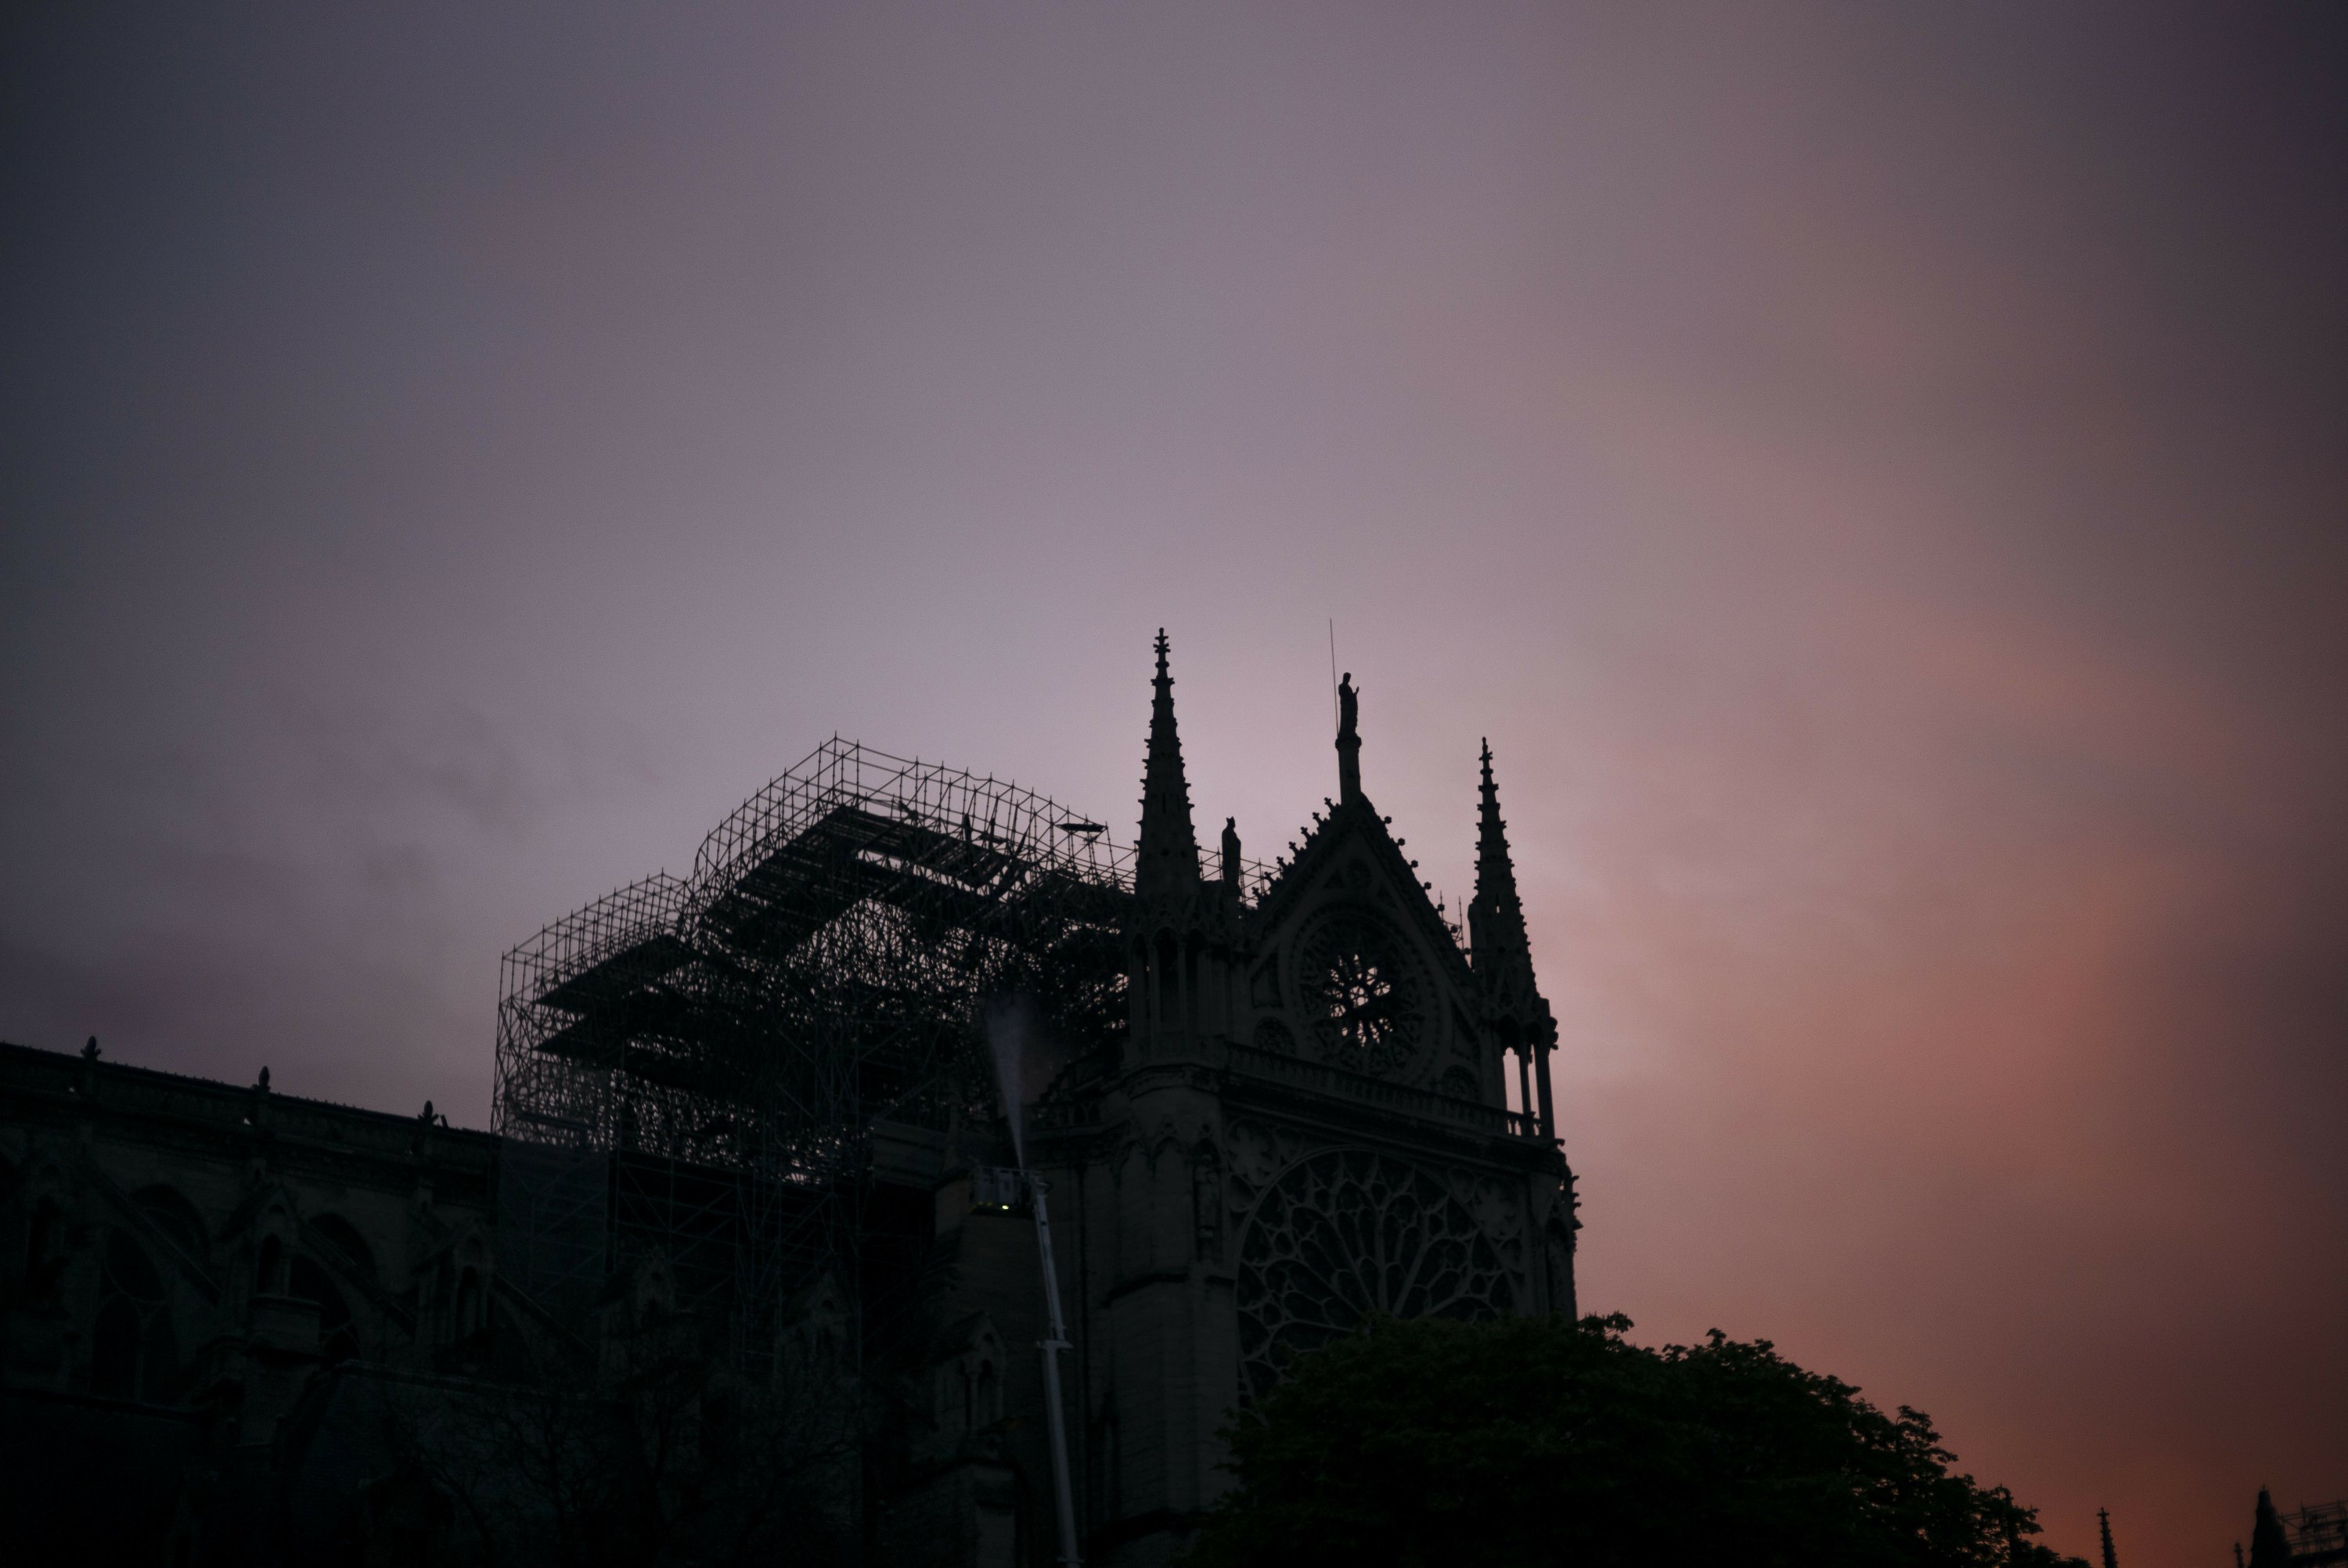 Nations express solidarity with France after Notre Dame fire